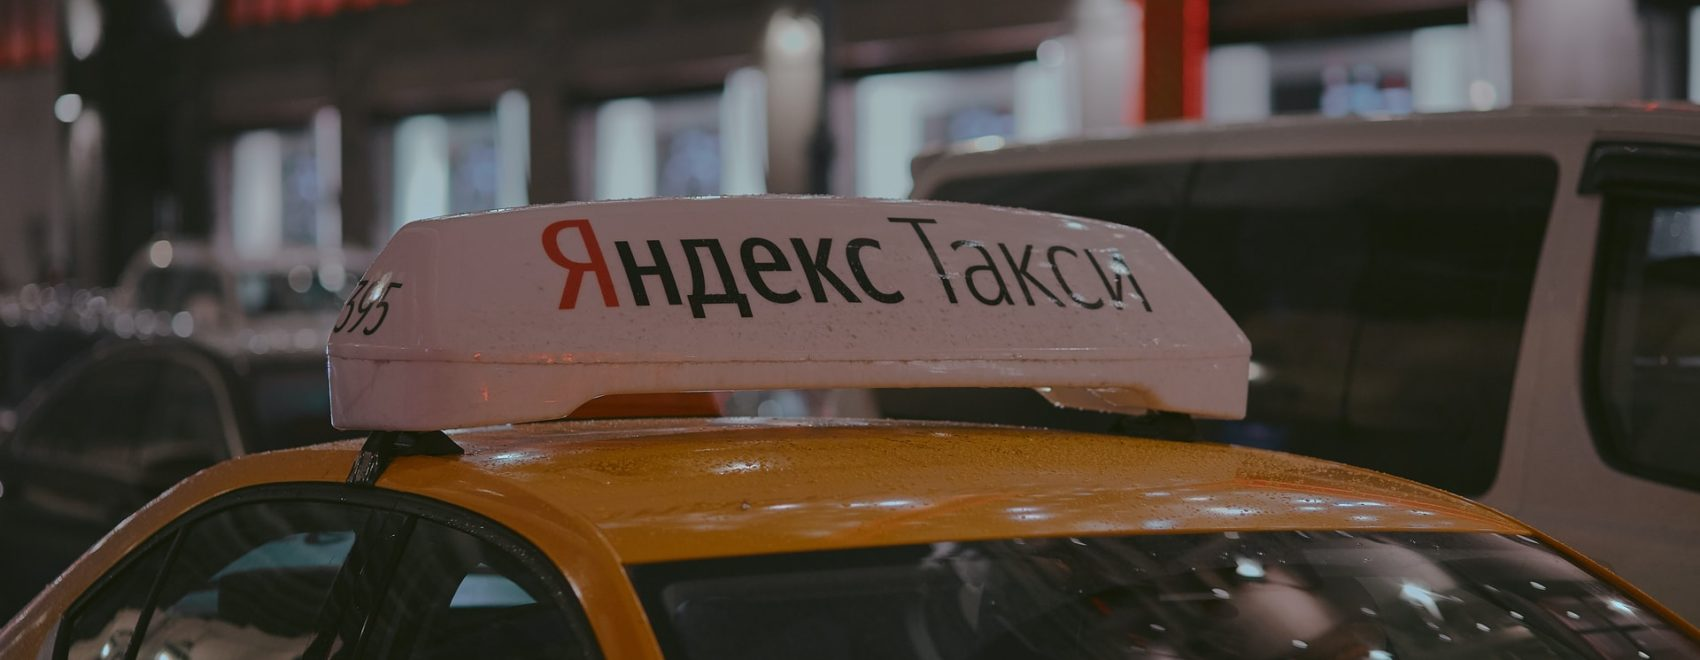 Yandex-Taxi-in-Moscow